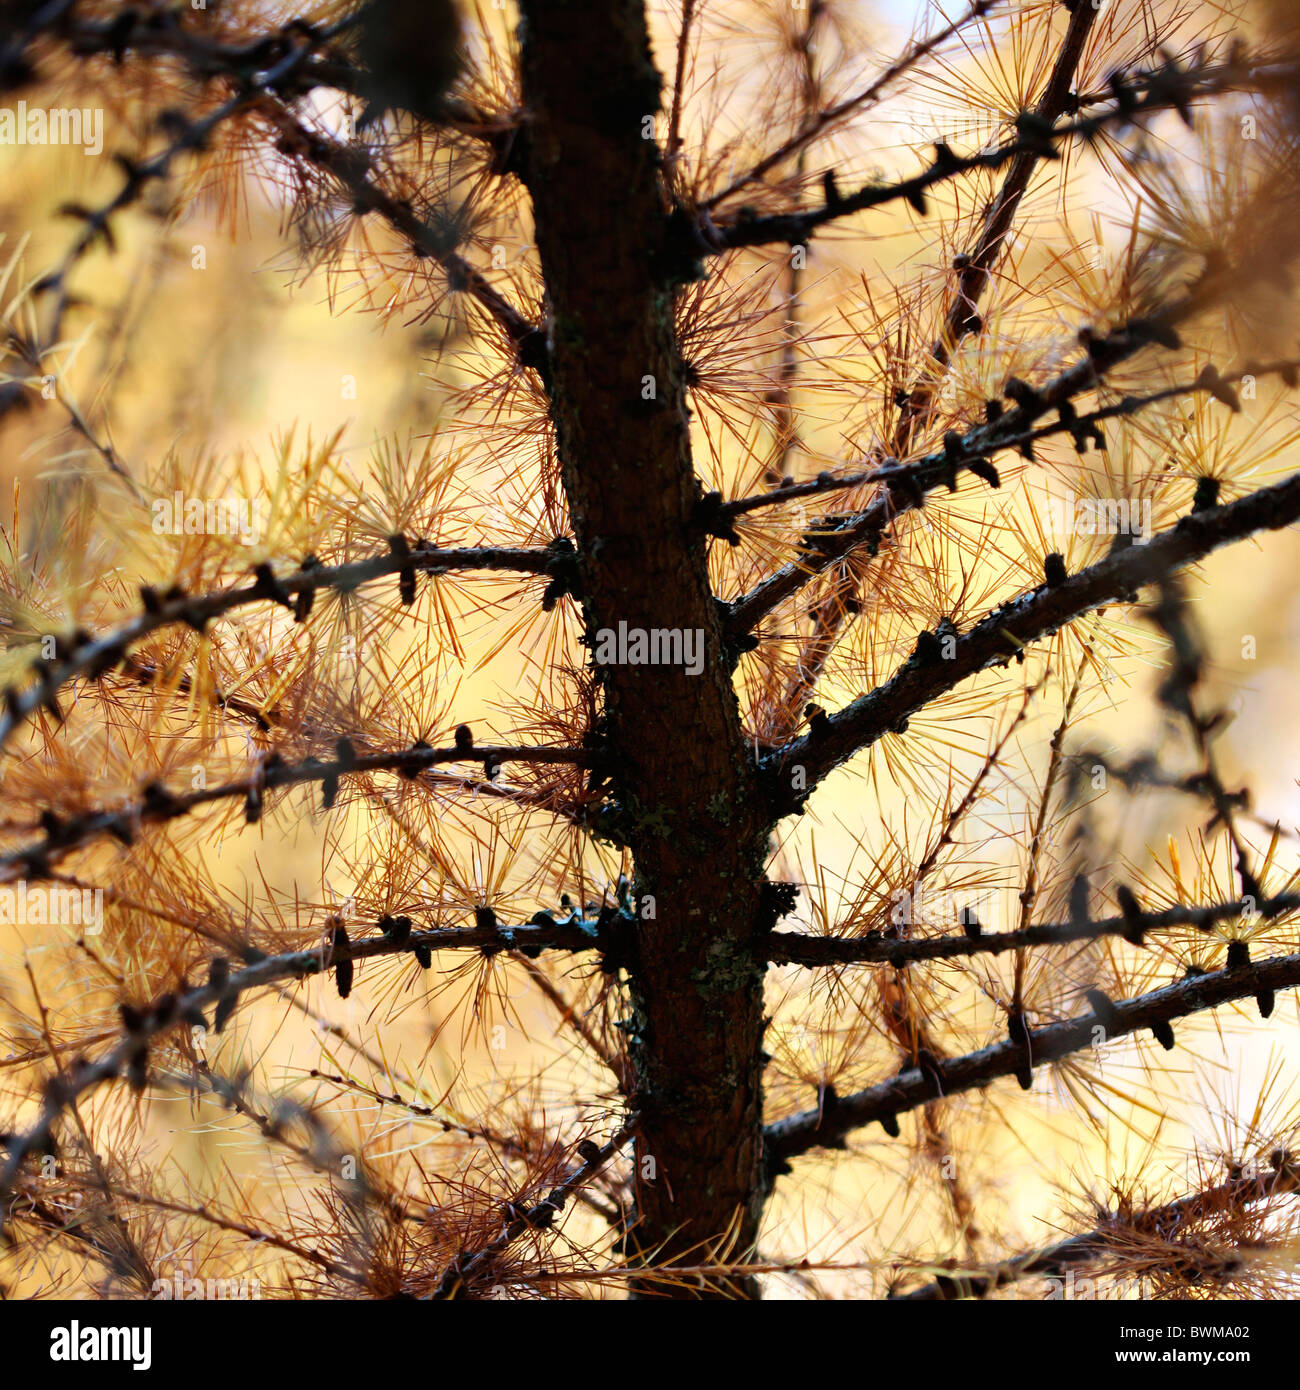 european larch tree in autumn - fine art photography Jane-Ann Butler Photography JABP929 - Stock Image